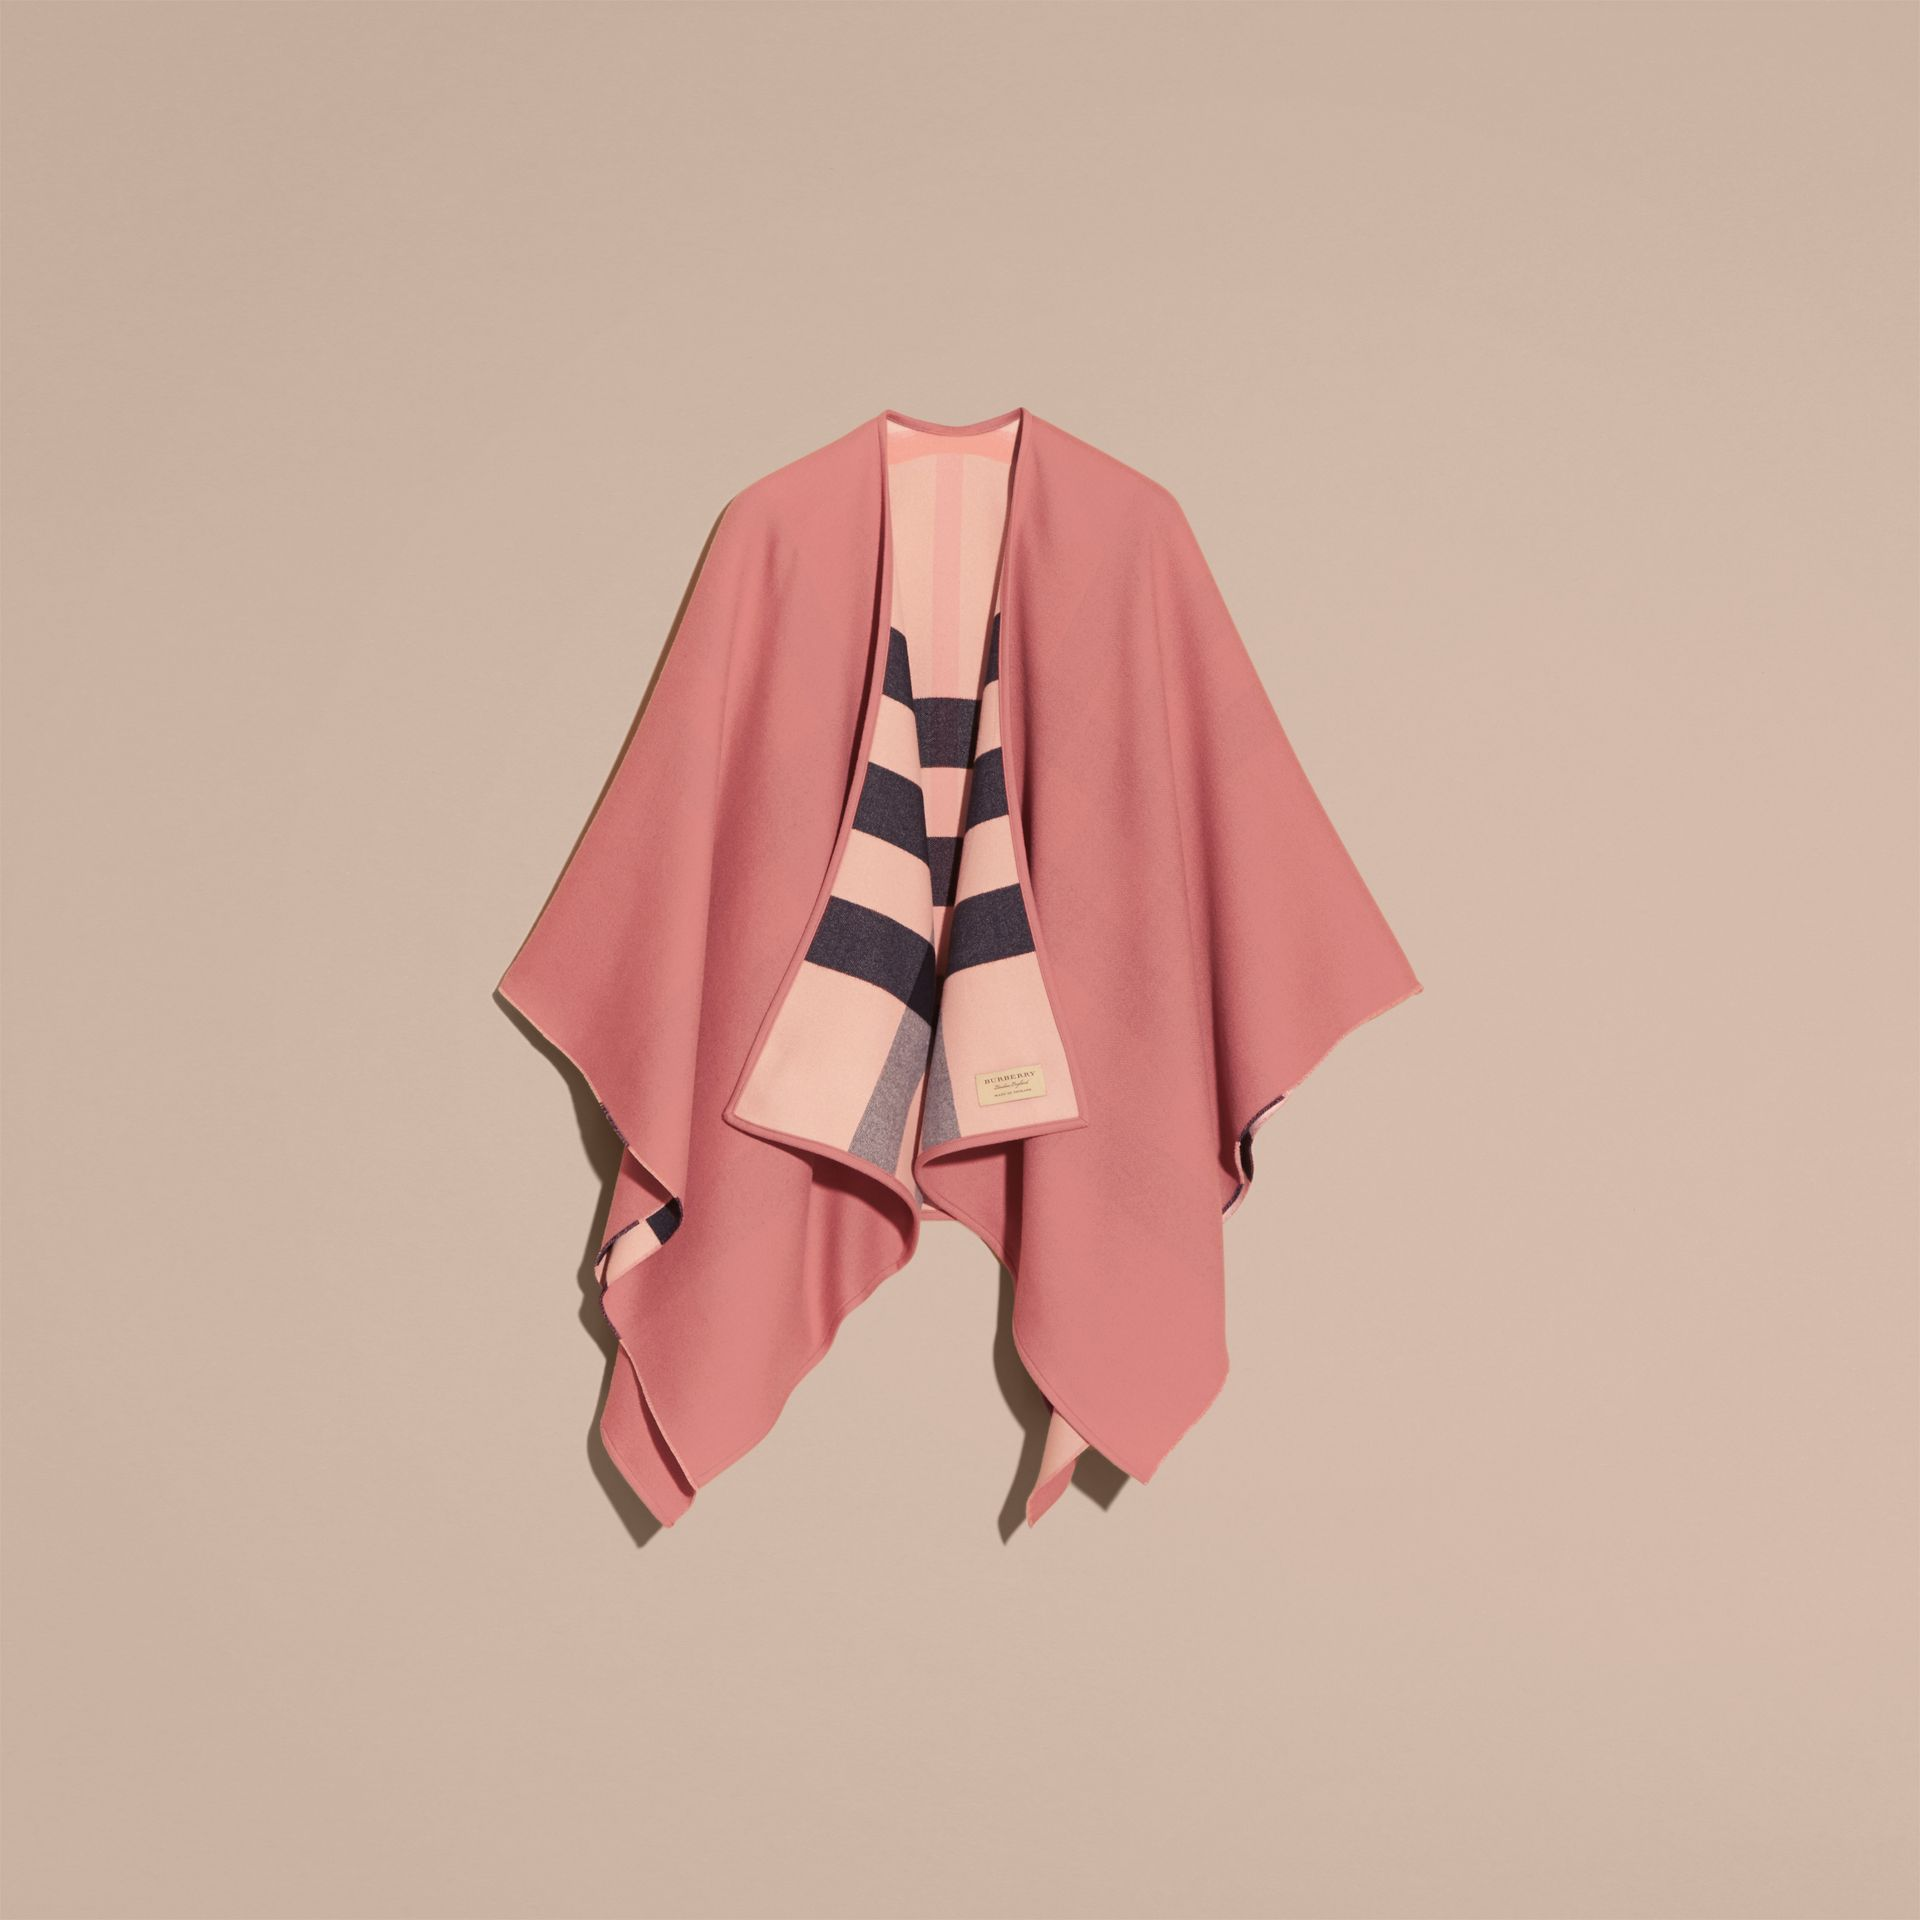 Reversible Check Merino Wool Poncho in Ash Rose - Women | Burberry - gallery image 4